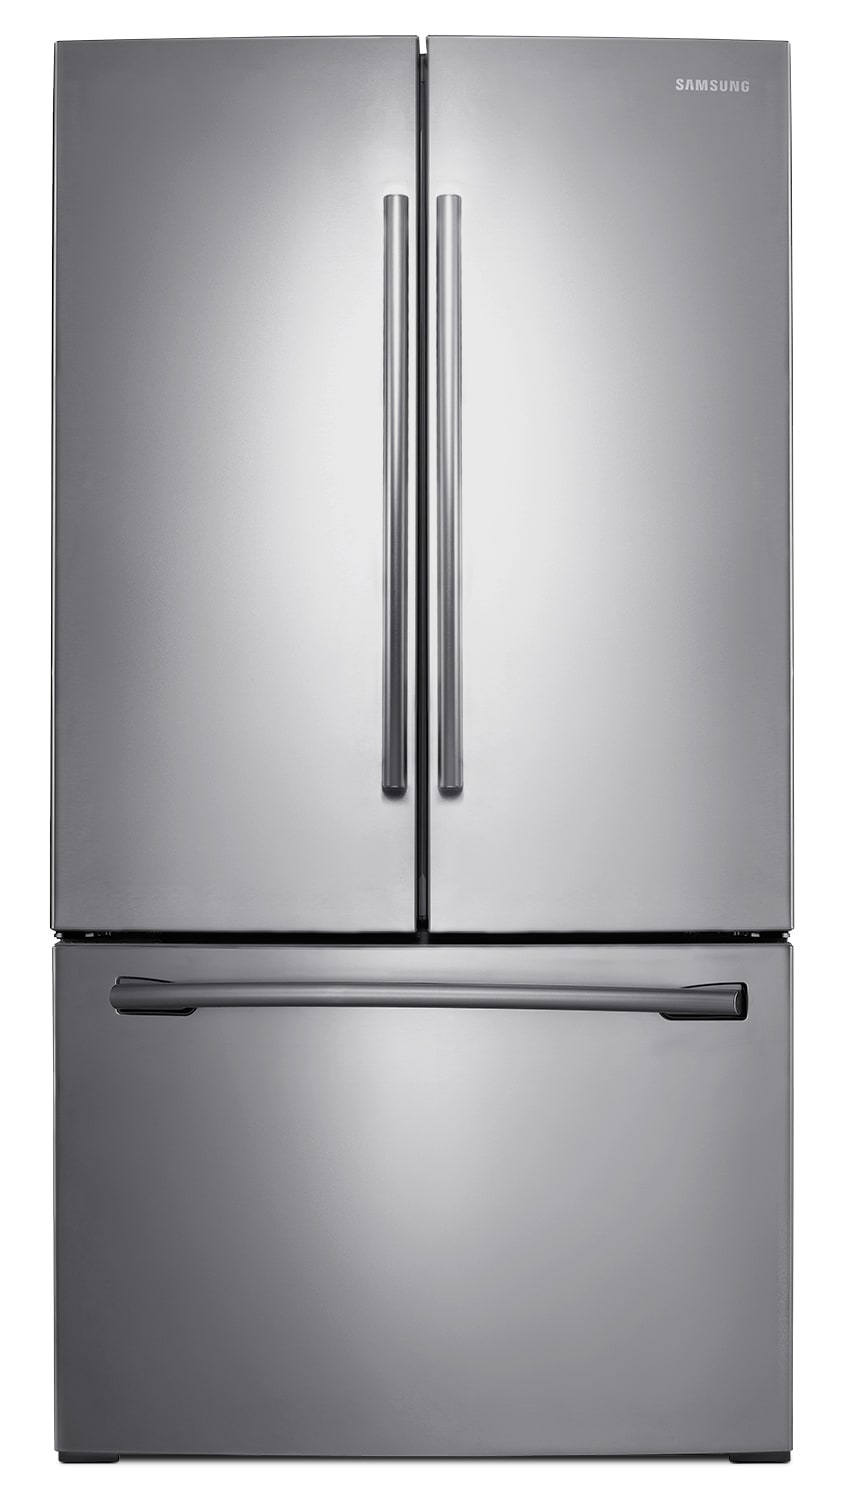 Samsung 25.7 Cu. Ft. French-Door Refrigerator – RF26HFENDSR/AA